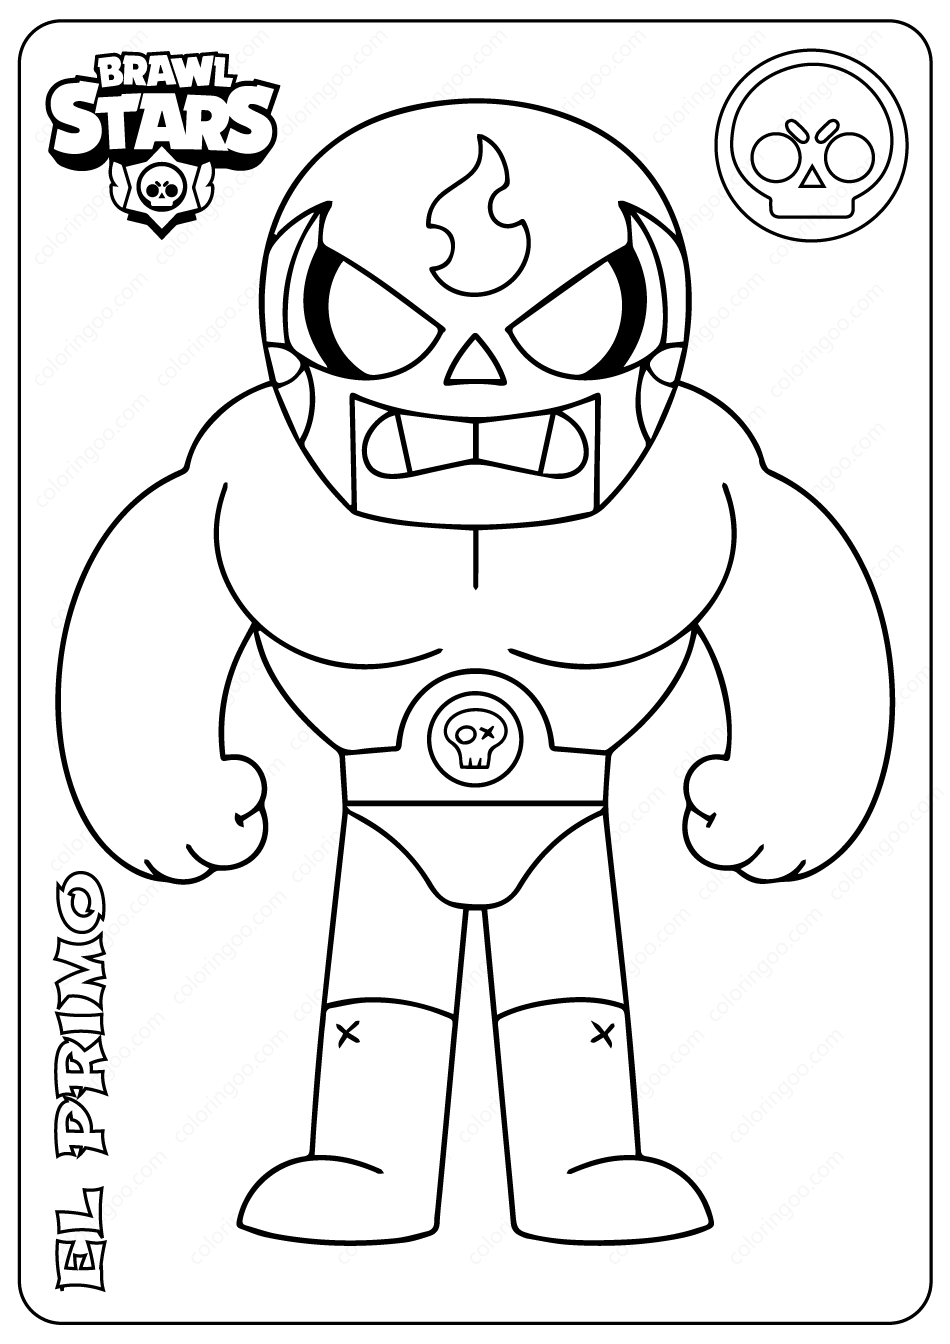 Printable Brawl Stars (El Primo) PDF Coloring Pages